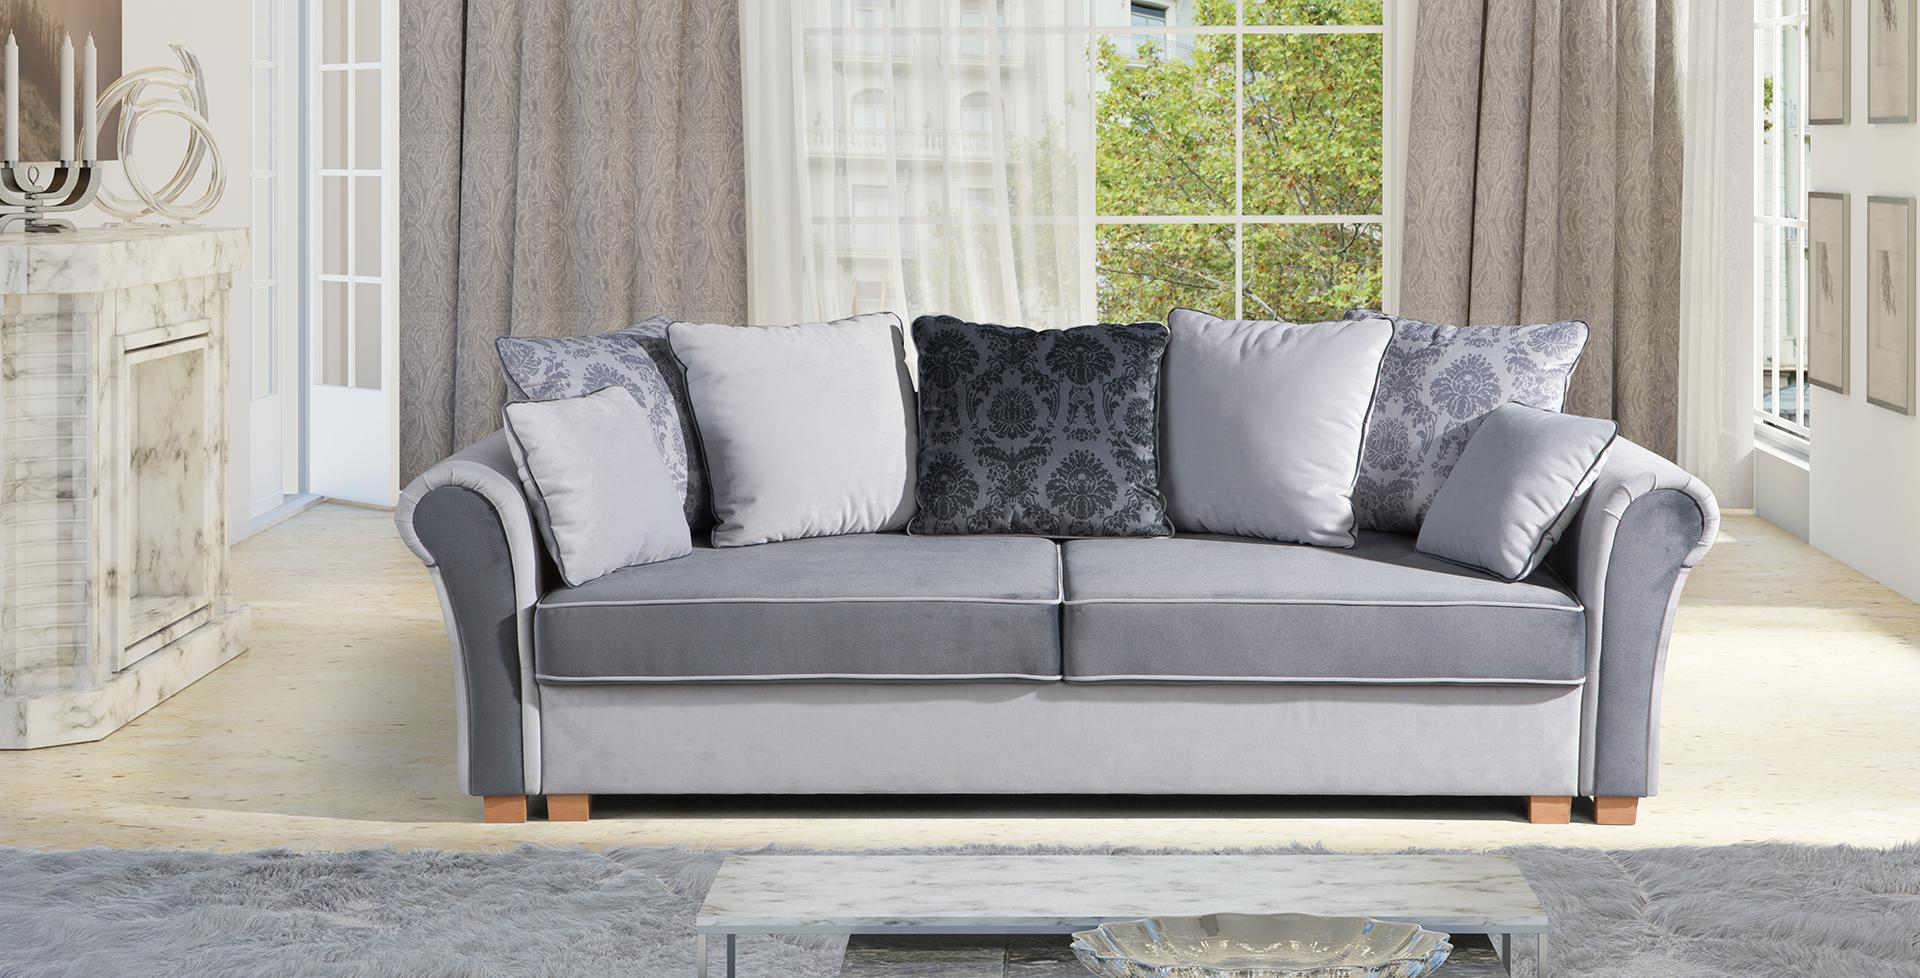 sofa schlafsofa designer 3 sitzer sofa mit bettfunktion bettkasten couch neu gusto www. Black Bedroom Furniture Sets. Home Design Ideas